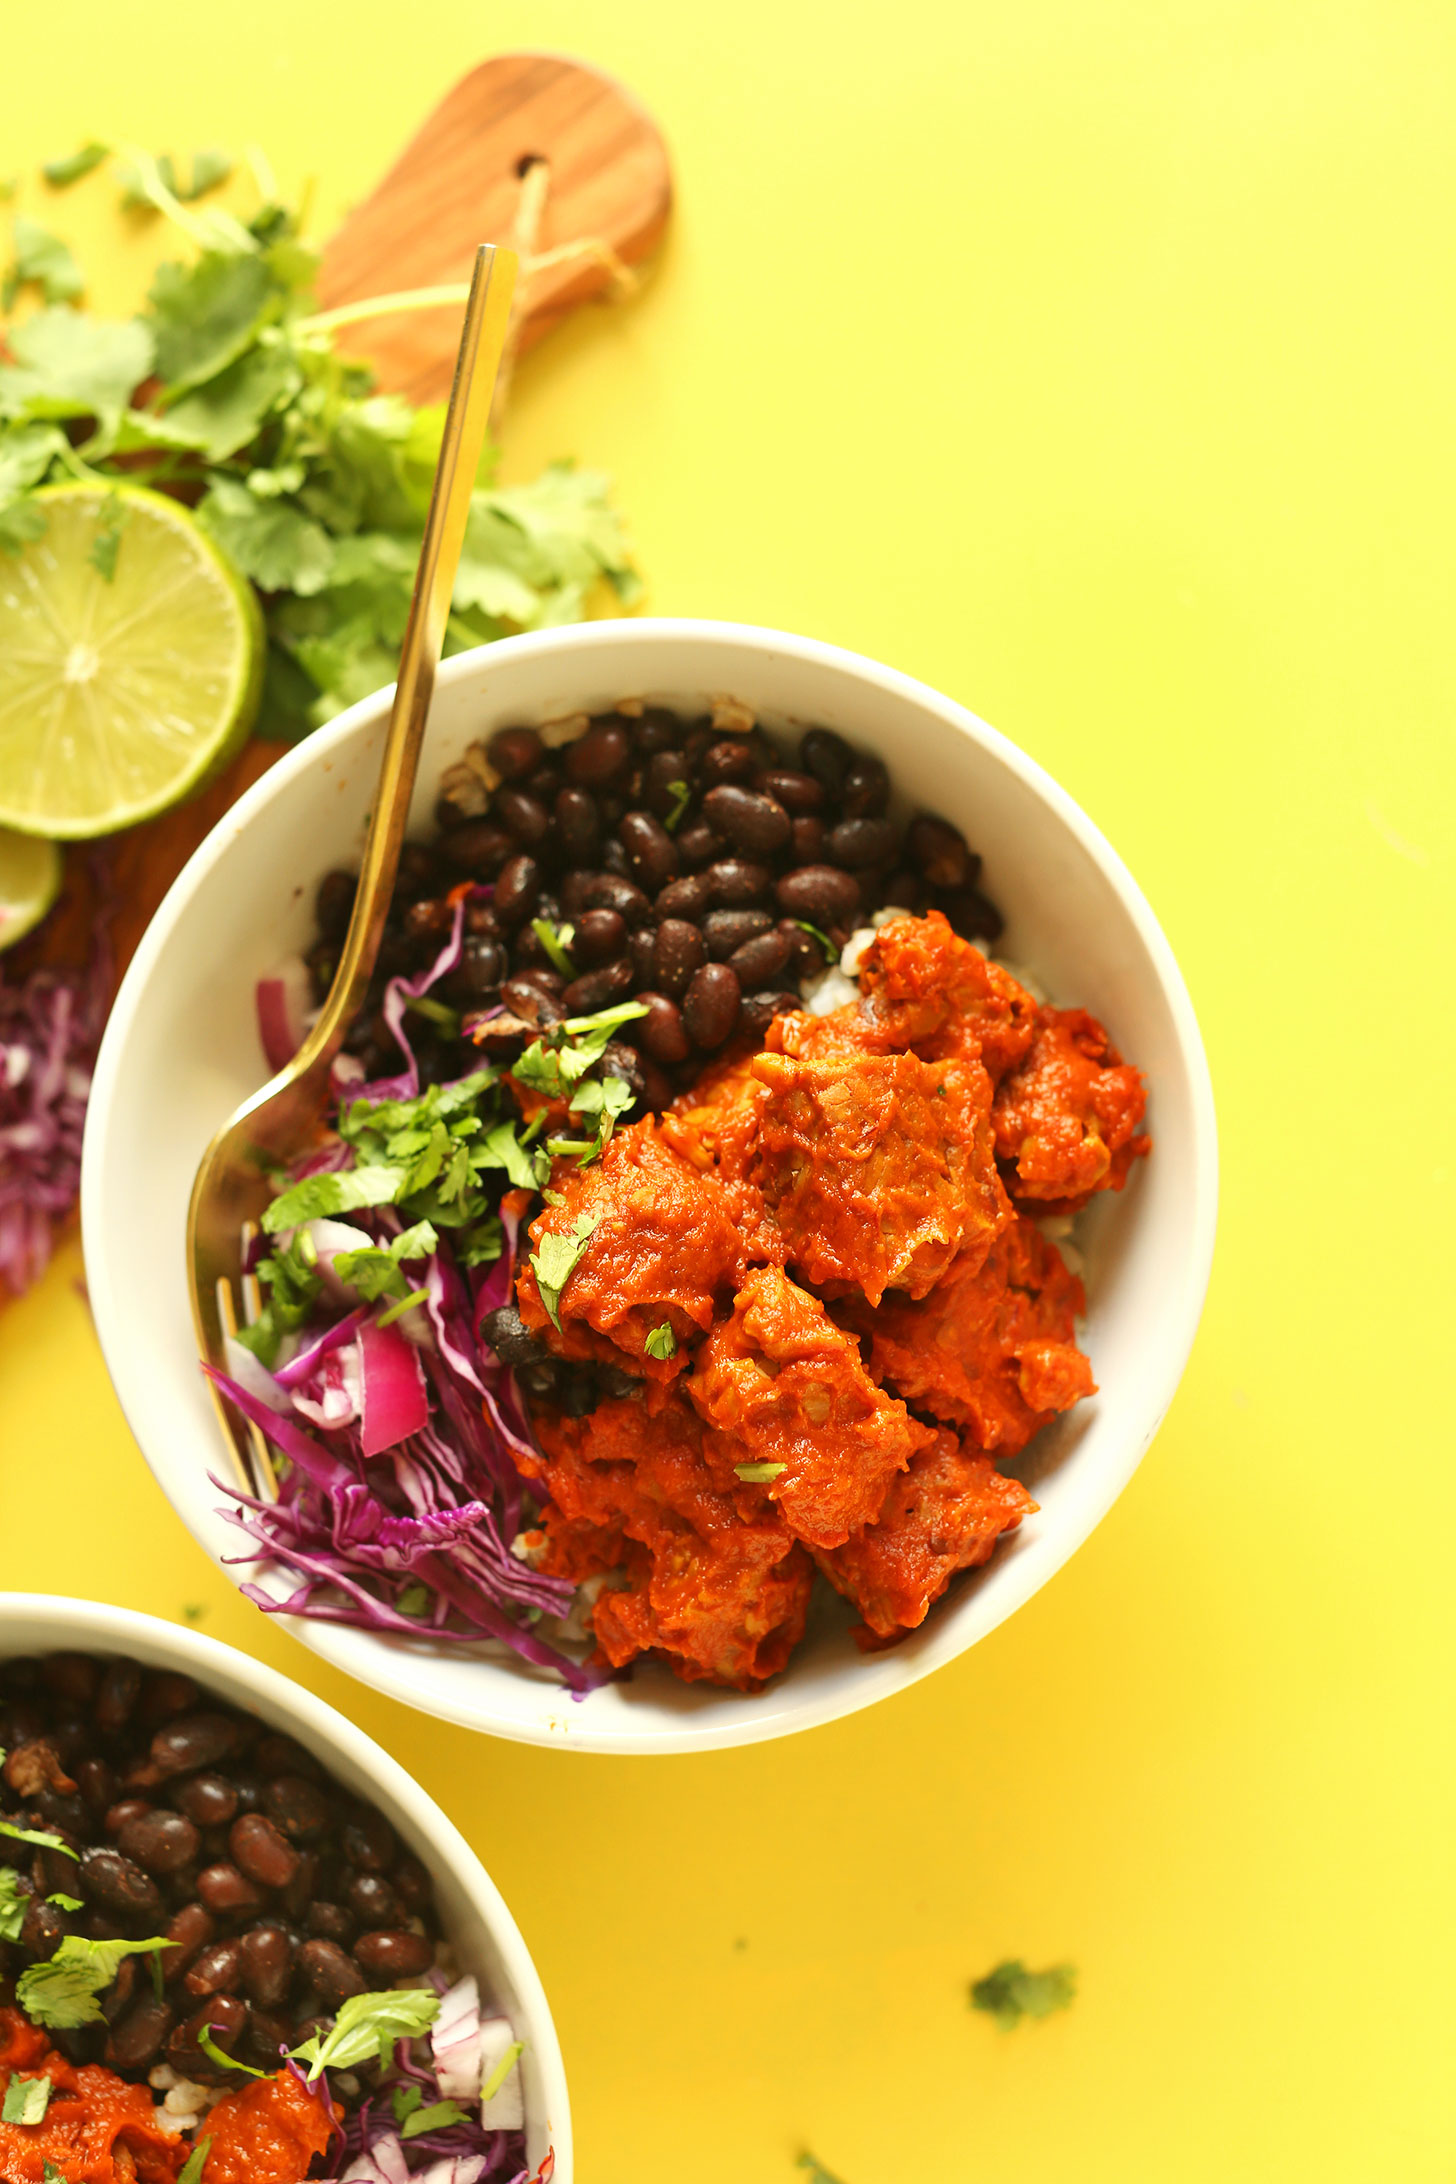 Two Smoky Tempeh Burrito Bowls for a plant-based mexican meal